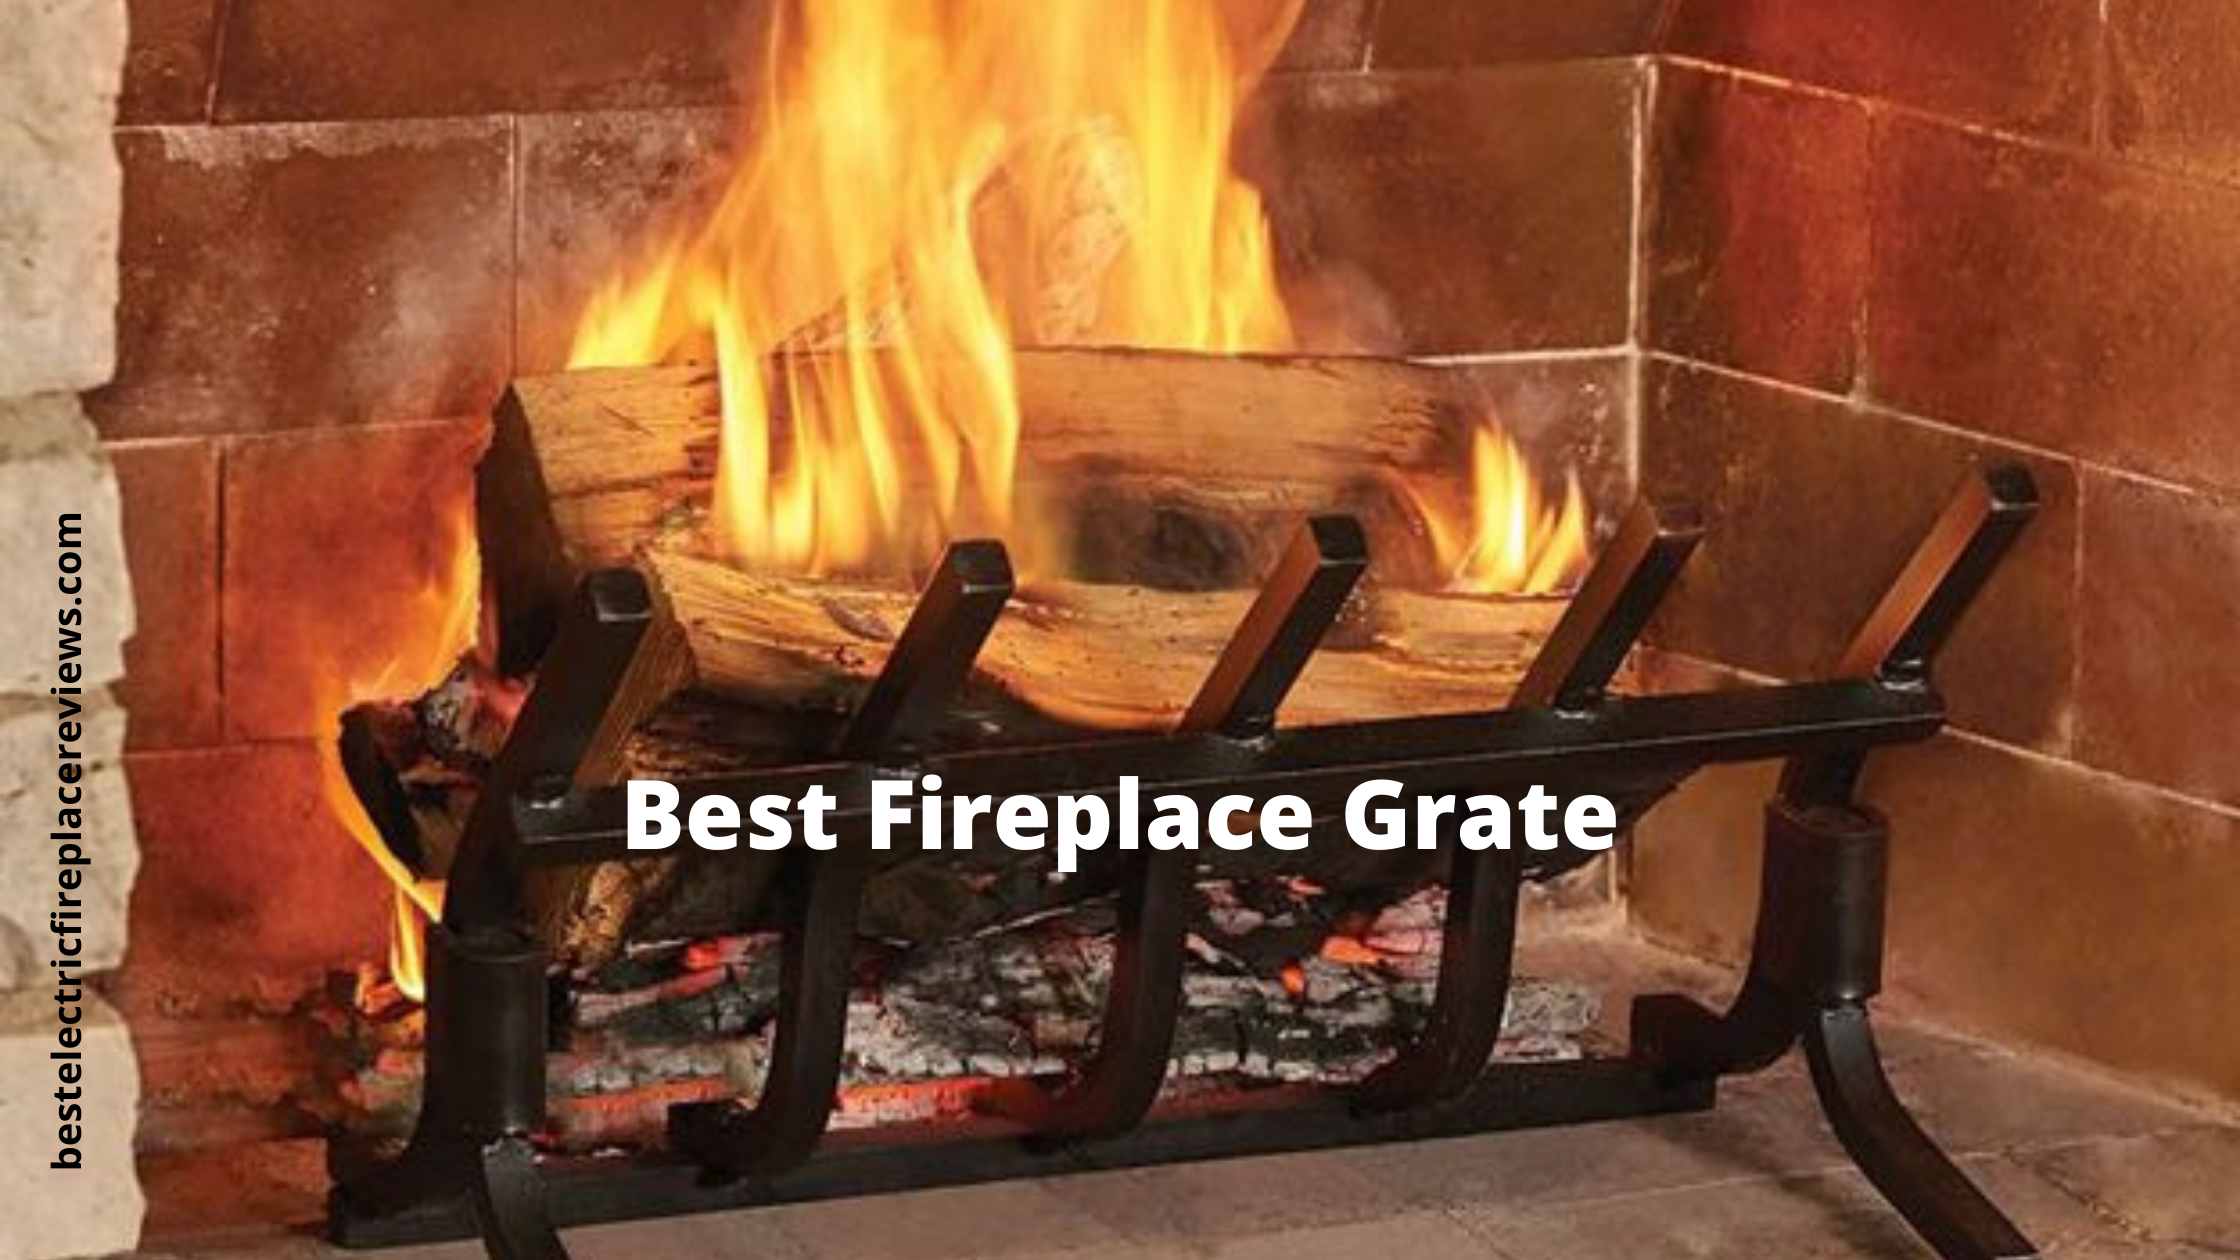 Top 6 Best Fireplace Grate